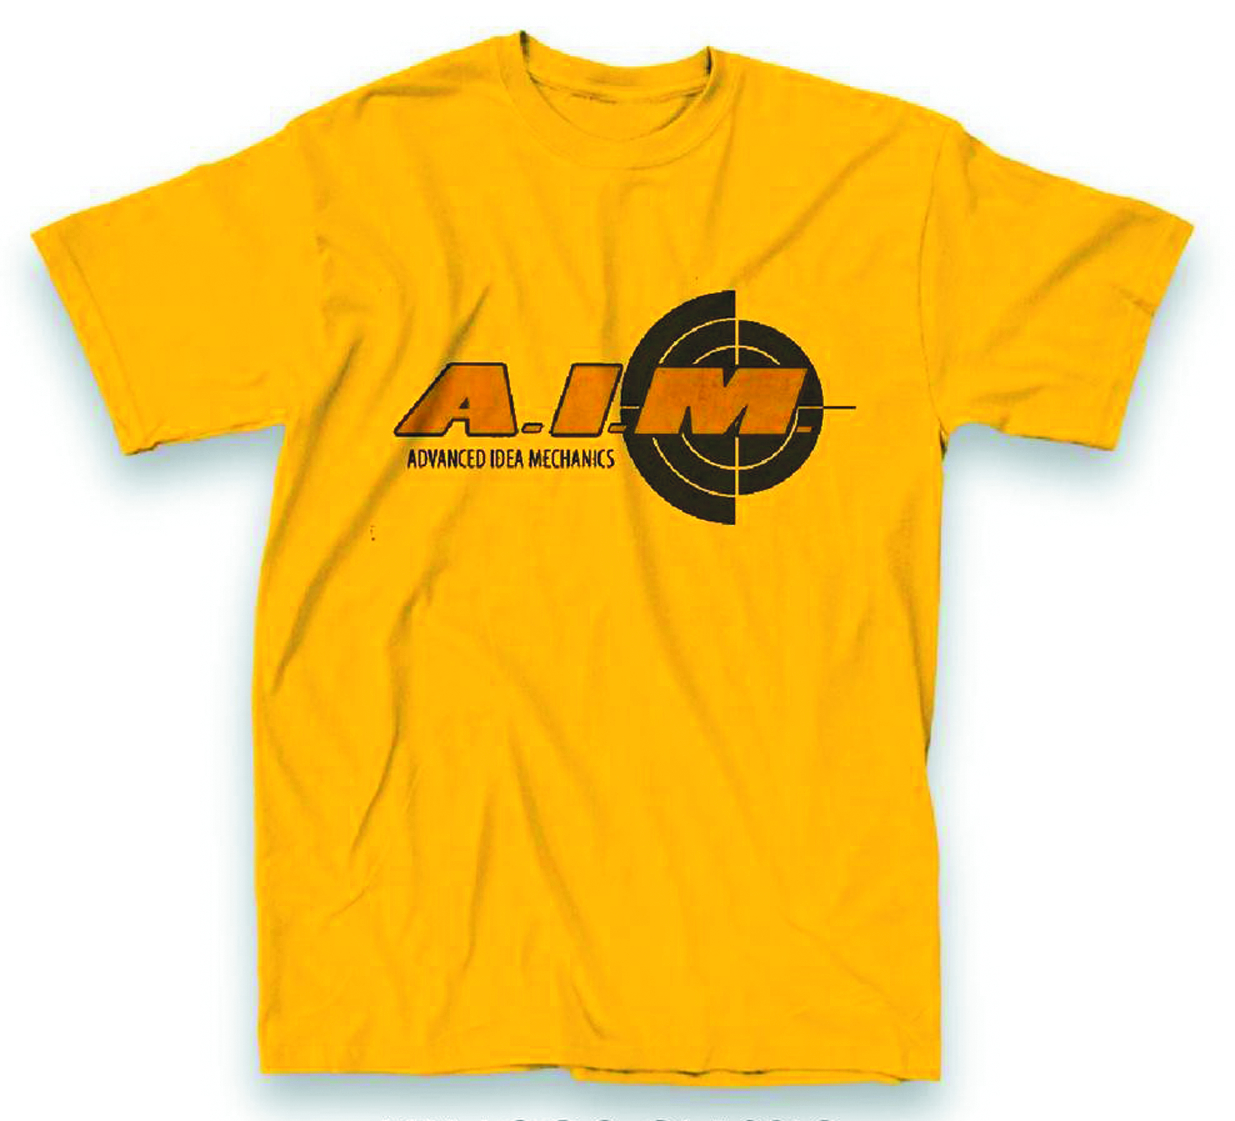 AIM LOGO PX YELLOW T/S MED